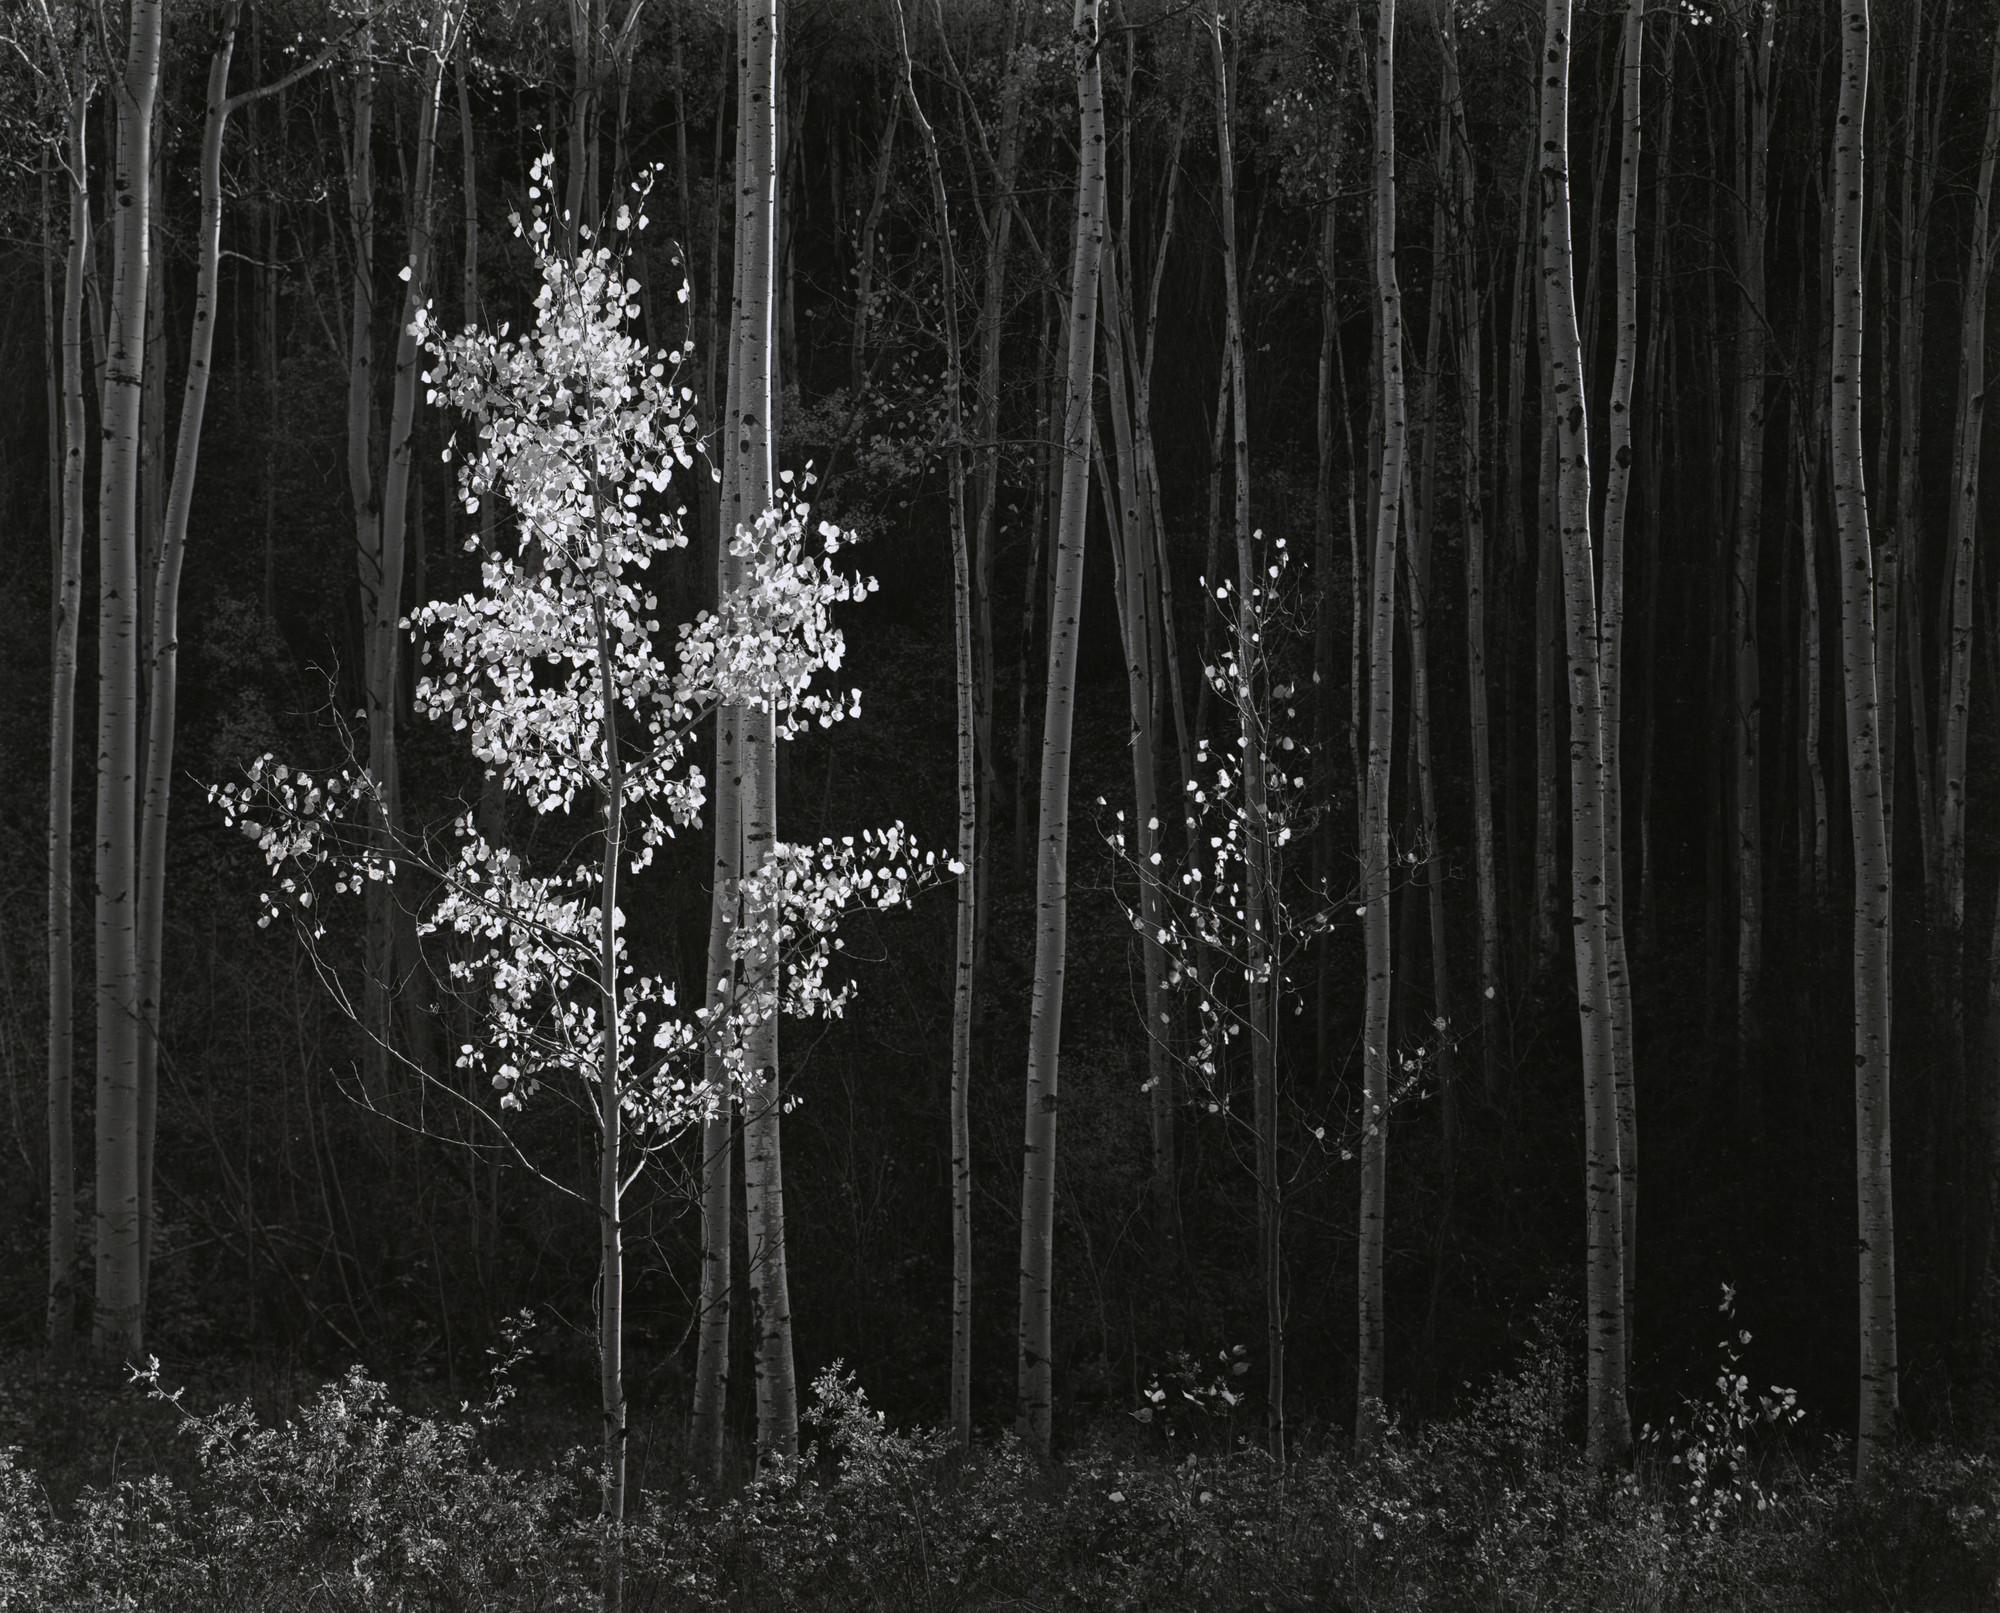 Ansel Adams. Aspens, Northern New Mexico. 1958